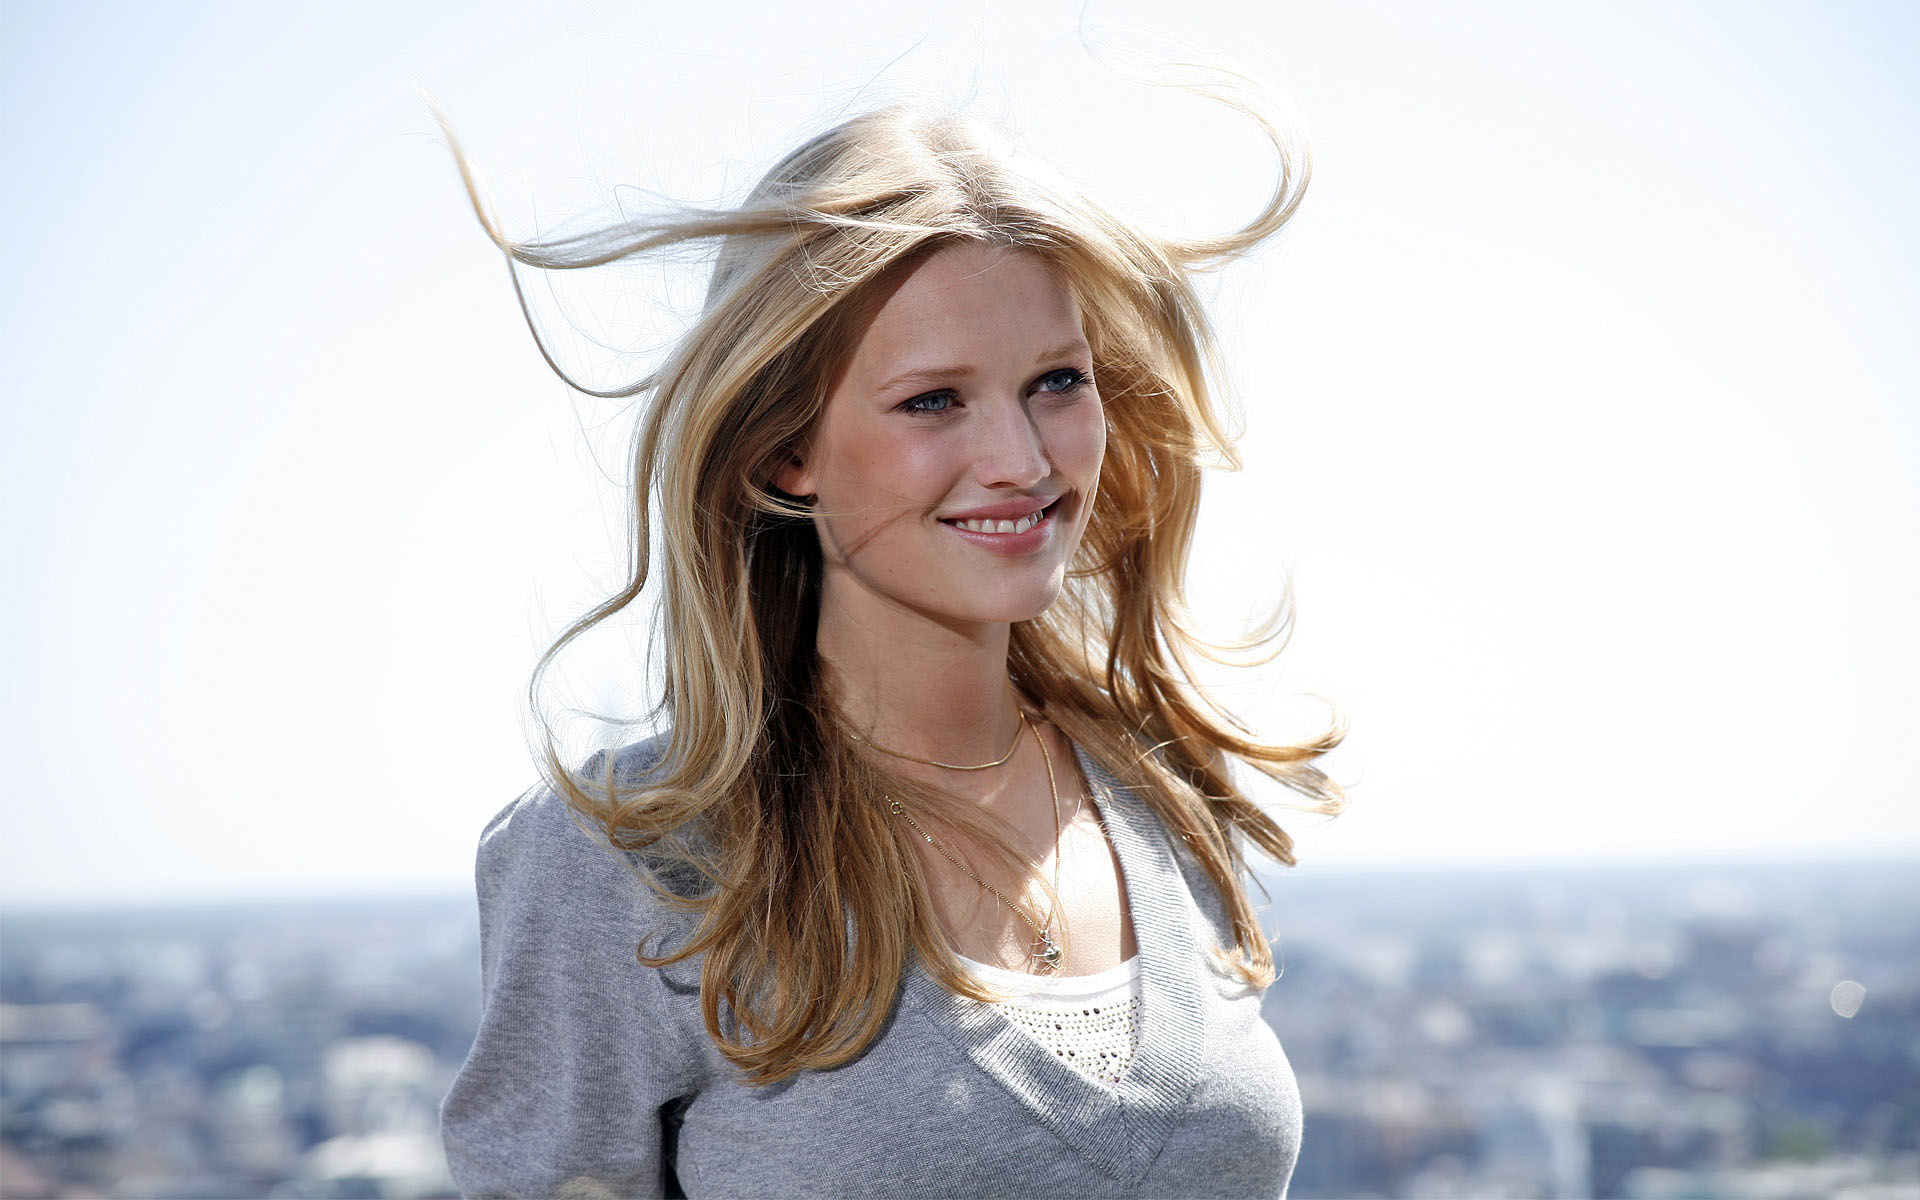 toni garrn smile wallpaper 60293